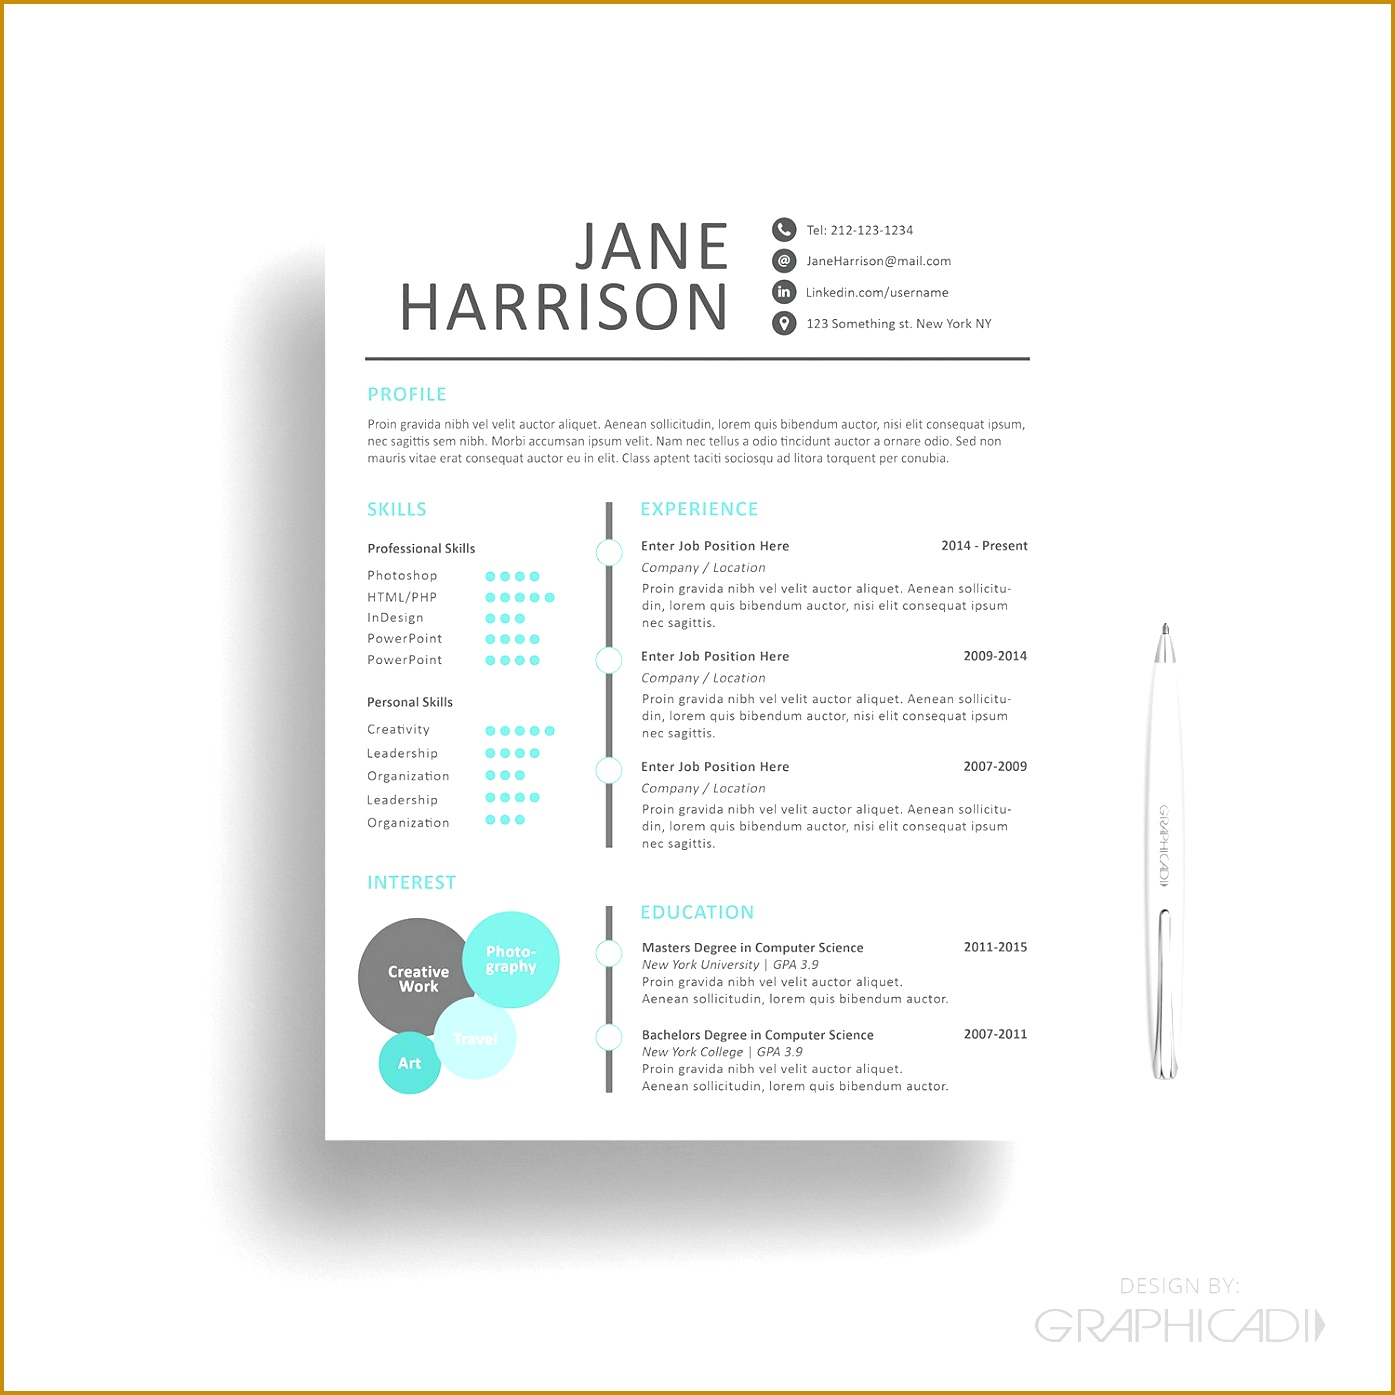 Gallery Resume with Cover Letter Fresh Example Cover Letter for Resume Inspirational Job Letter 0d Archives 13951395